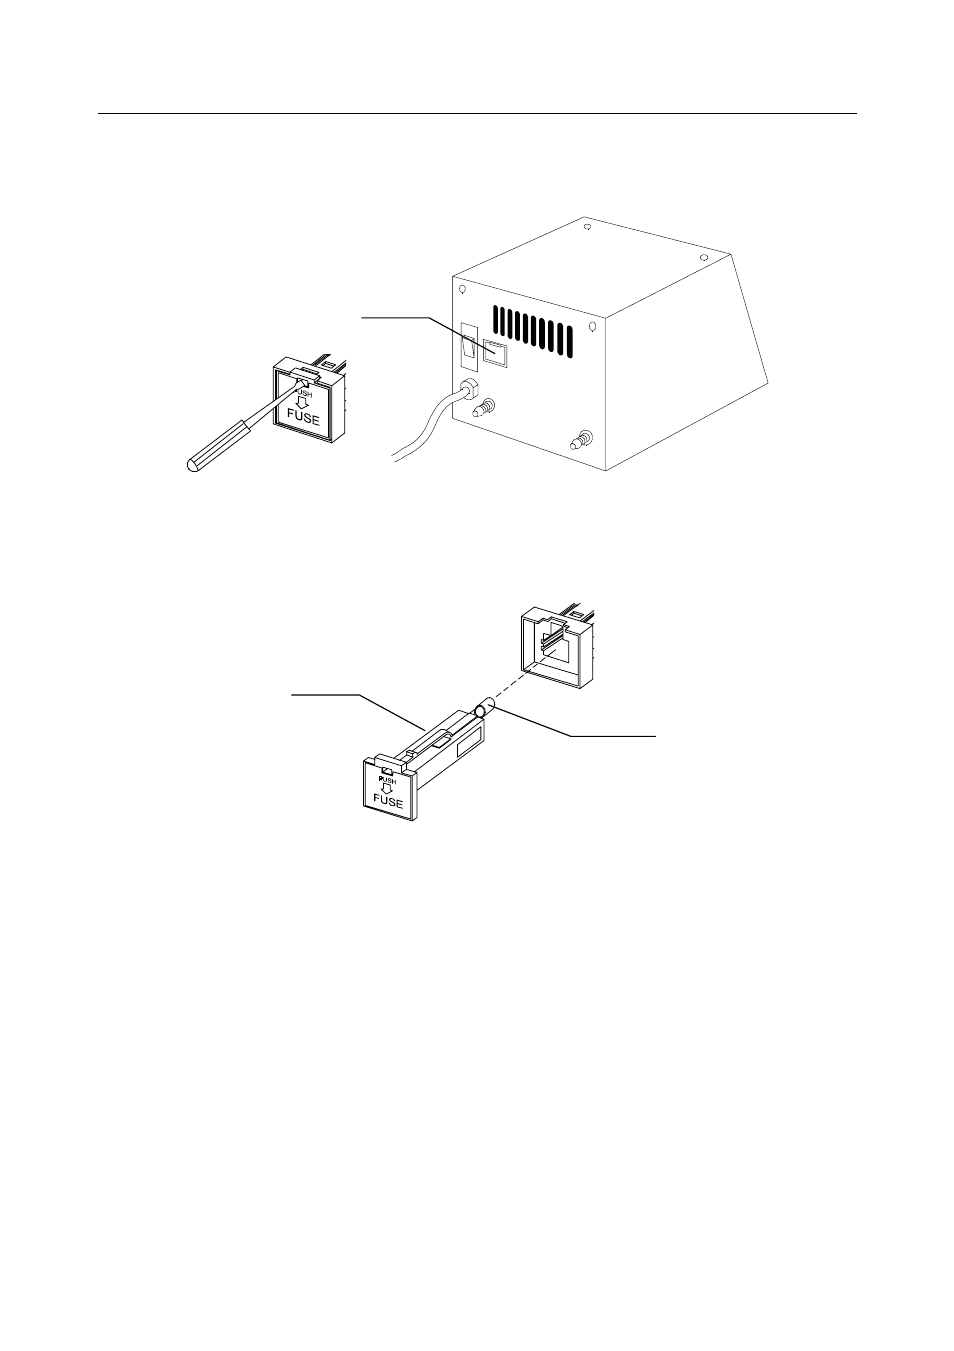 medium resolution of replacing fuse yamato scientific vacuum controller vacuum controller user manual page 28 34